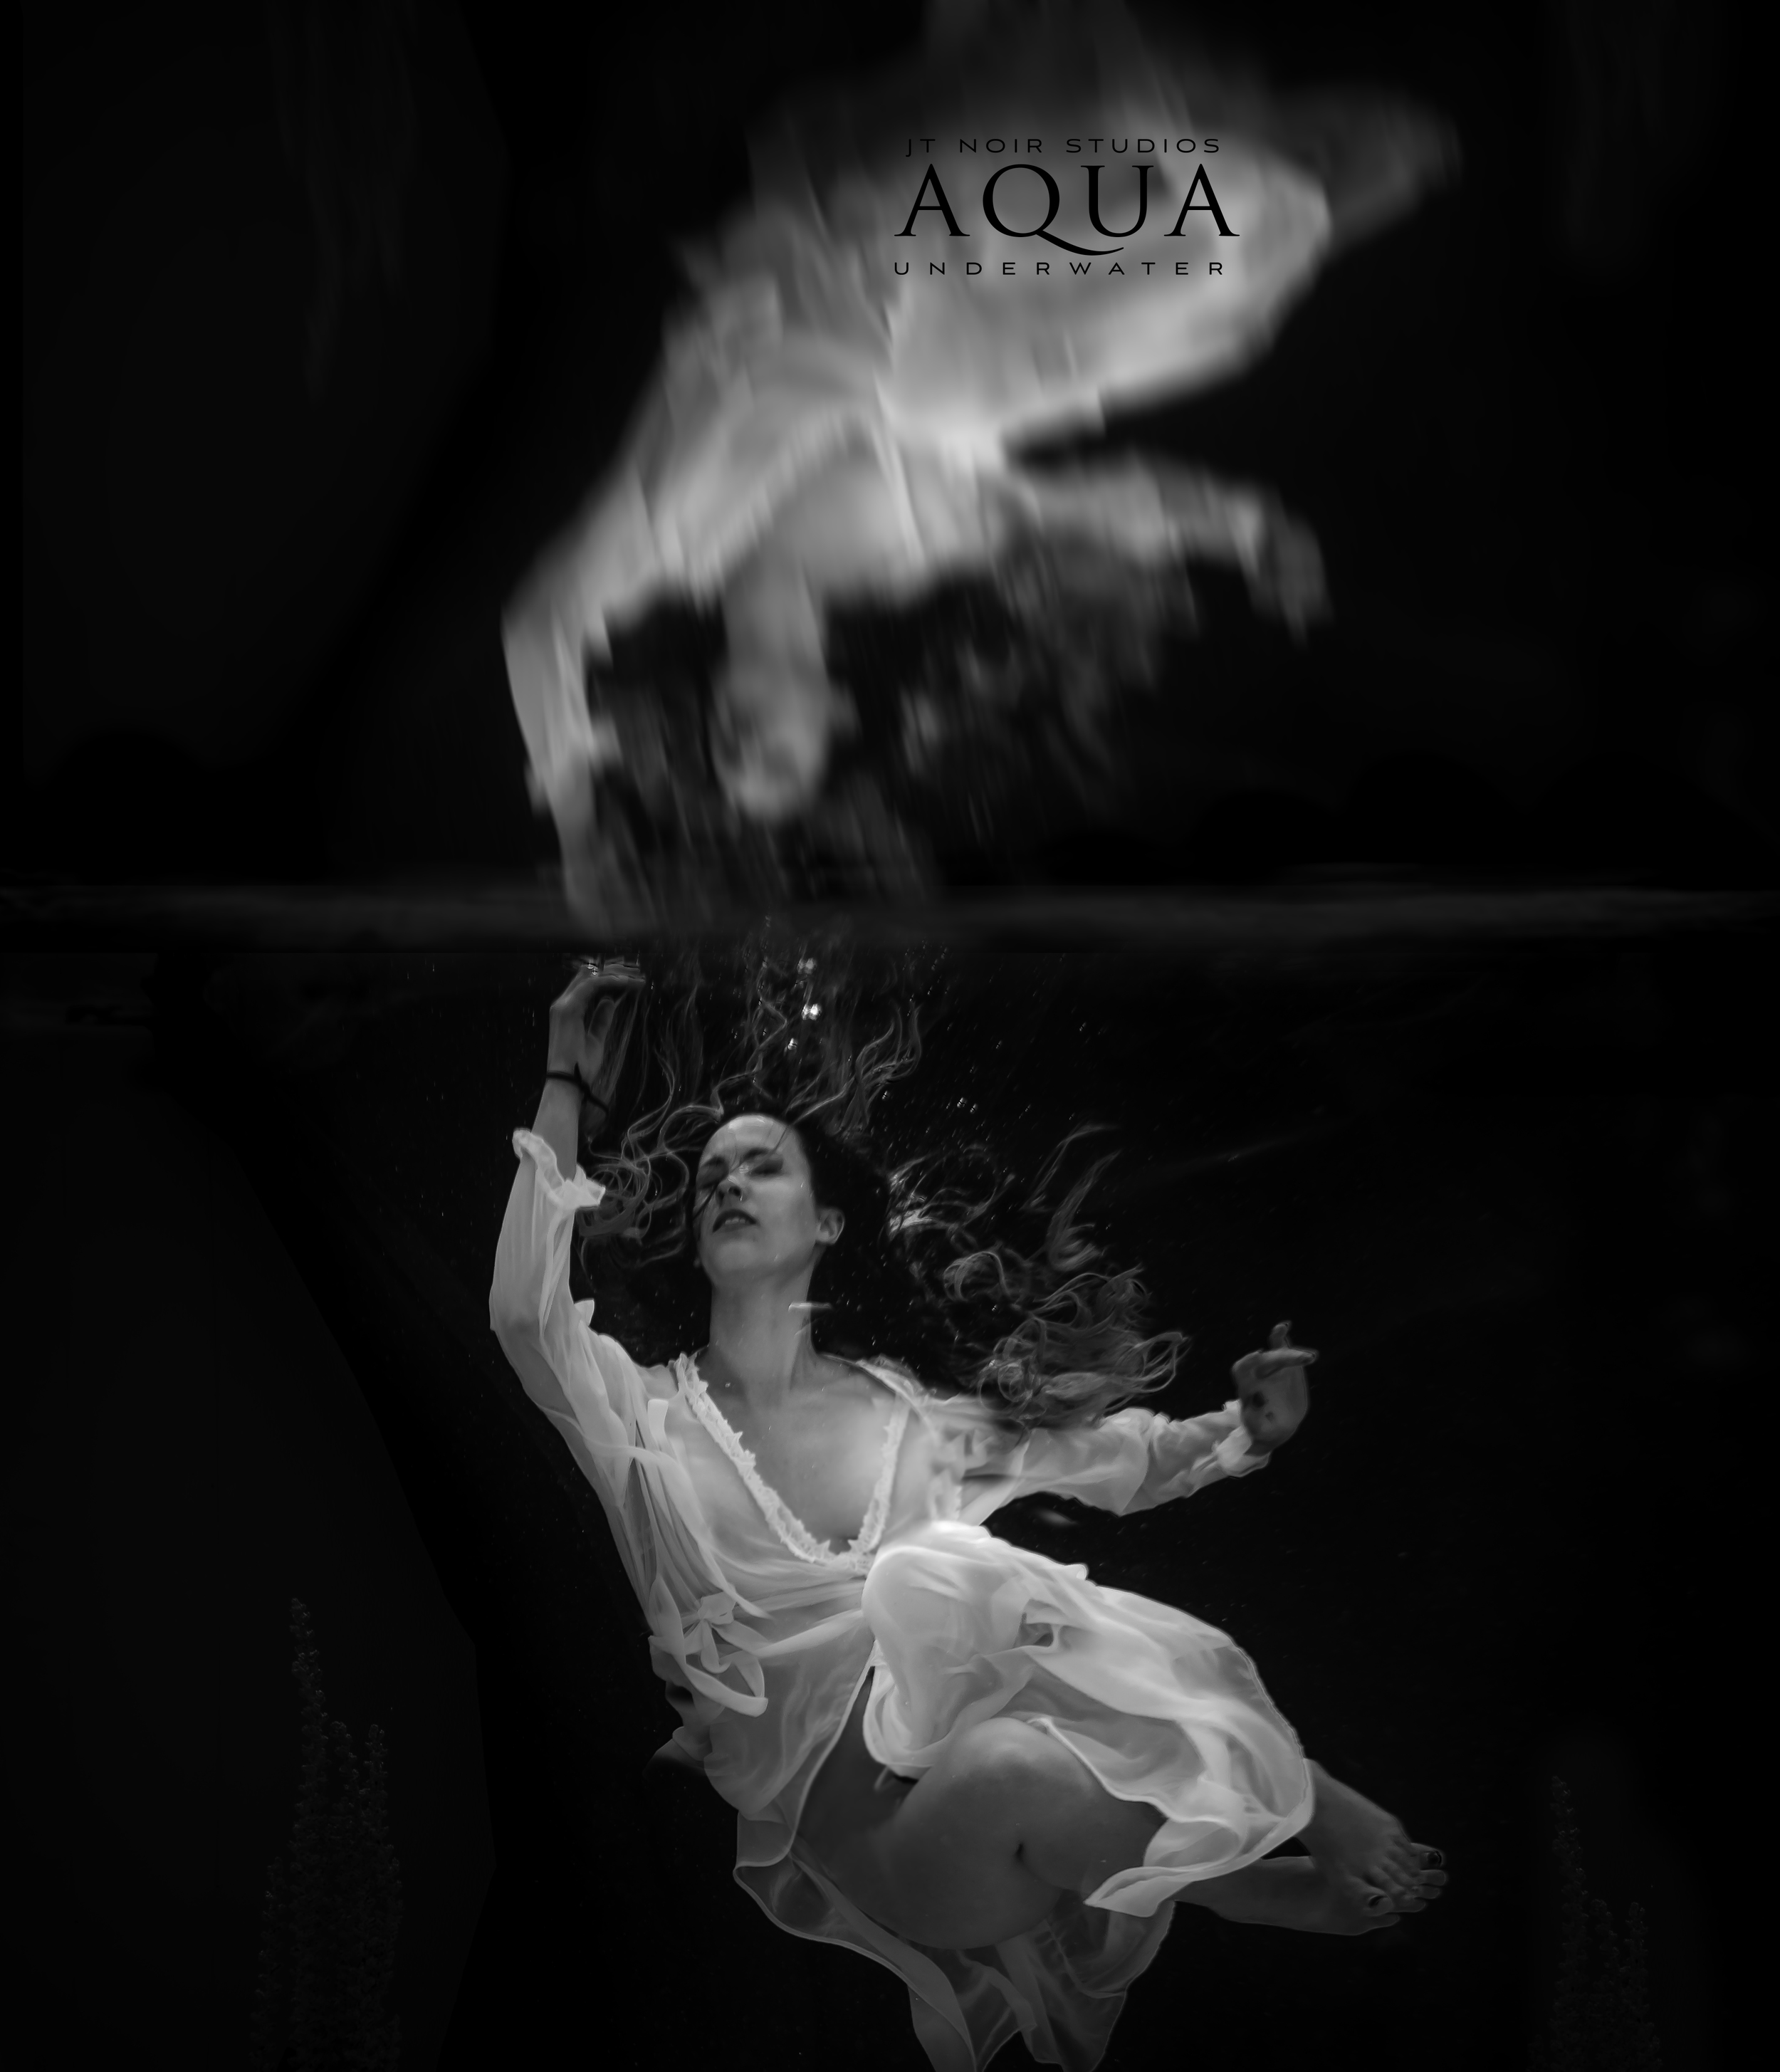 JTAqua_Underwater_Florida_Photographer_Palatka_Boudoir_reflection.jpg